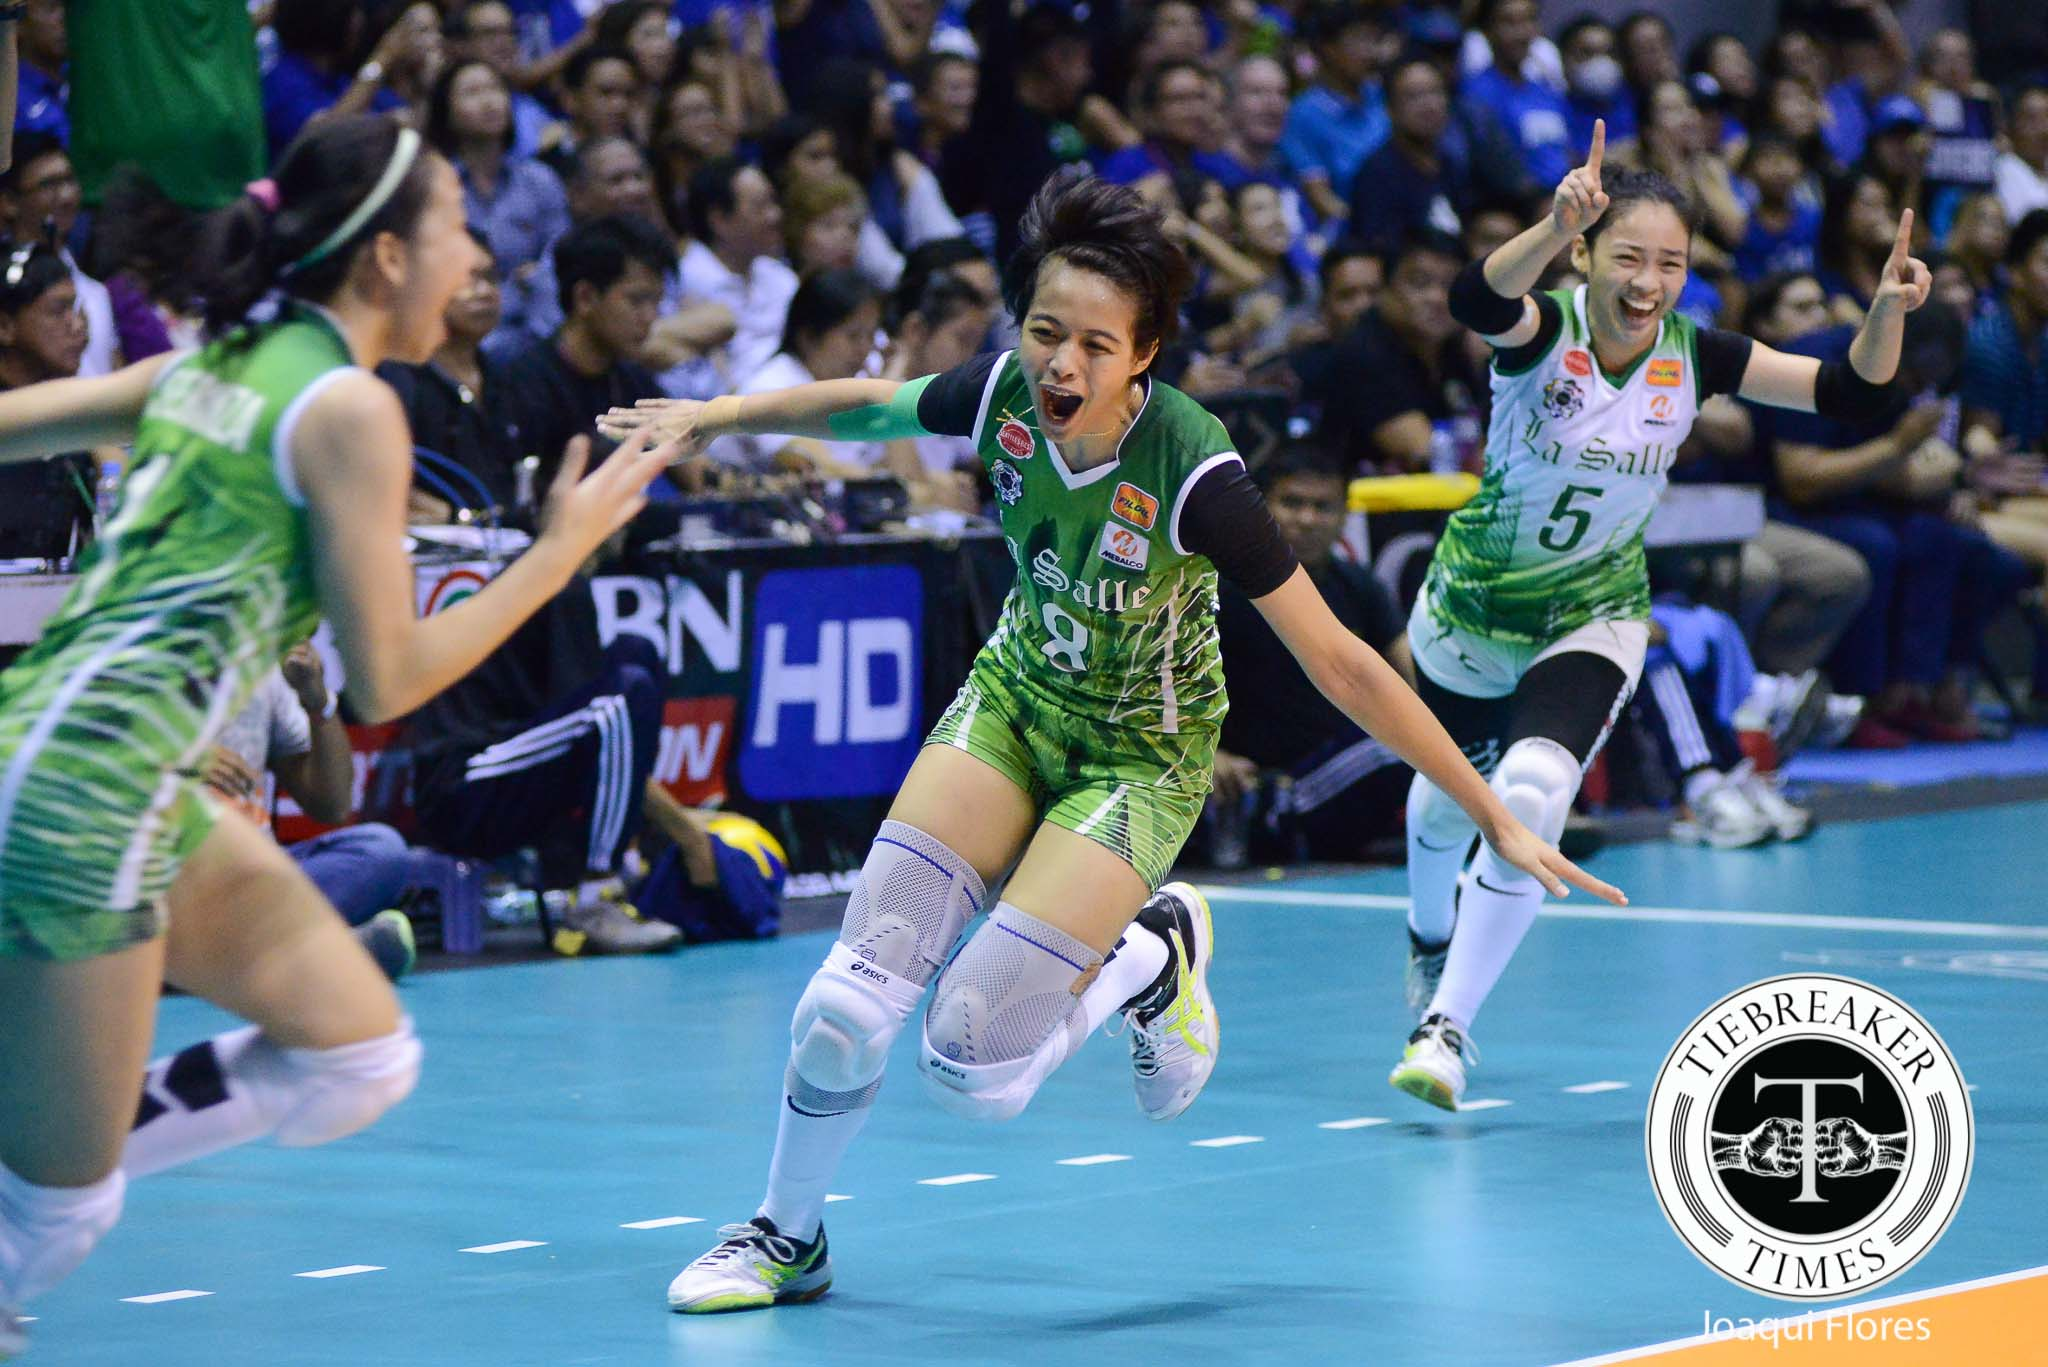 Tiebreaker Times Galang: 'It's all worth it' DLSU News UAAP Volleyball  UAAP Season 78 Women's Volleyball UAAP Season 78 DLSU Women's Volleyball Ara Galang